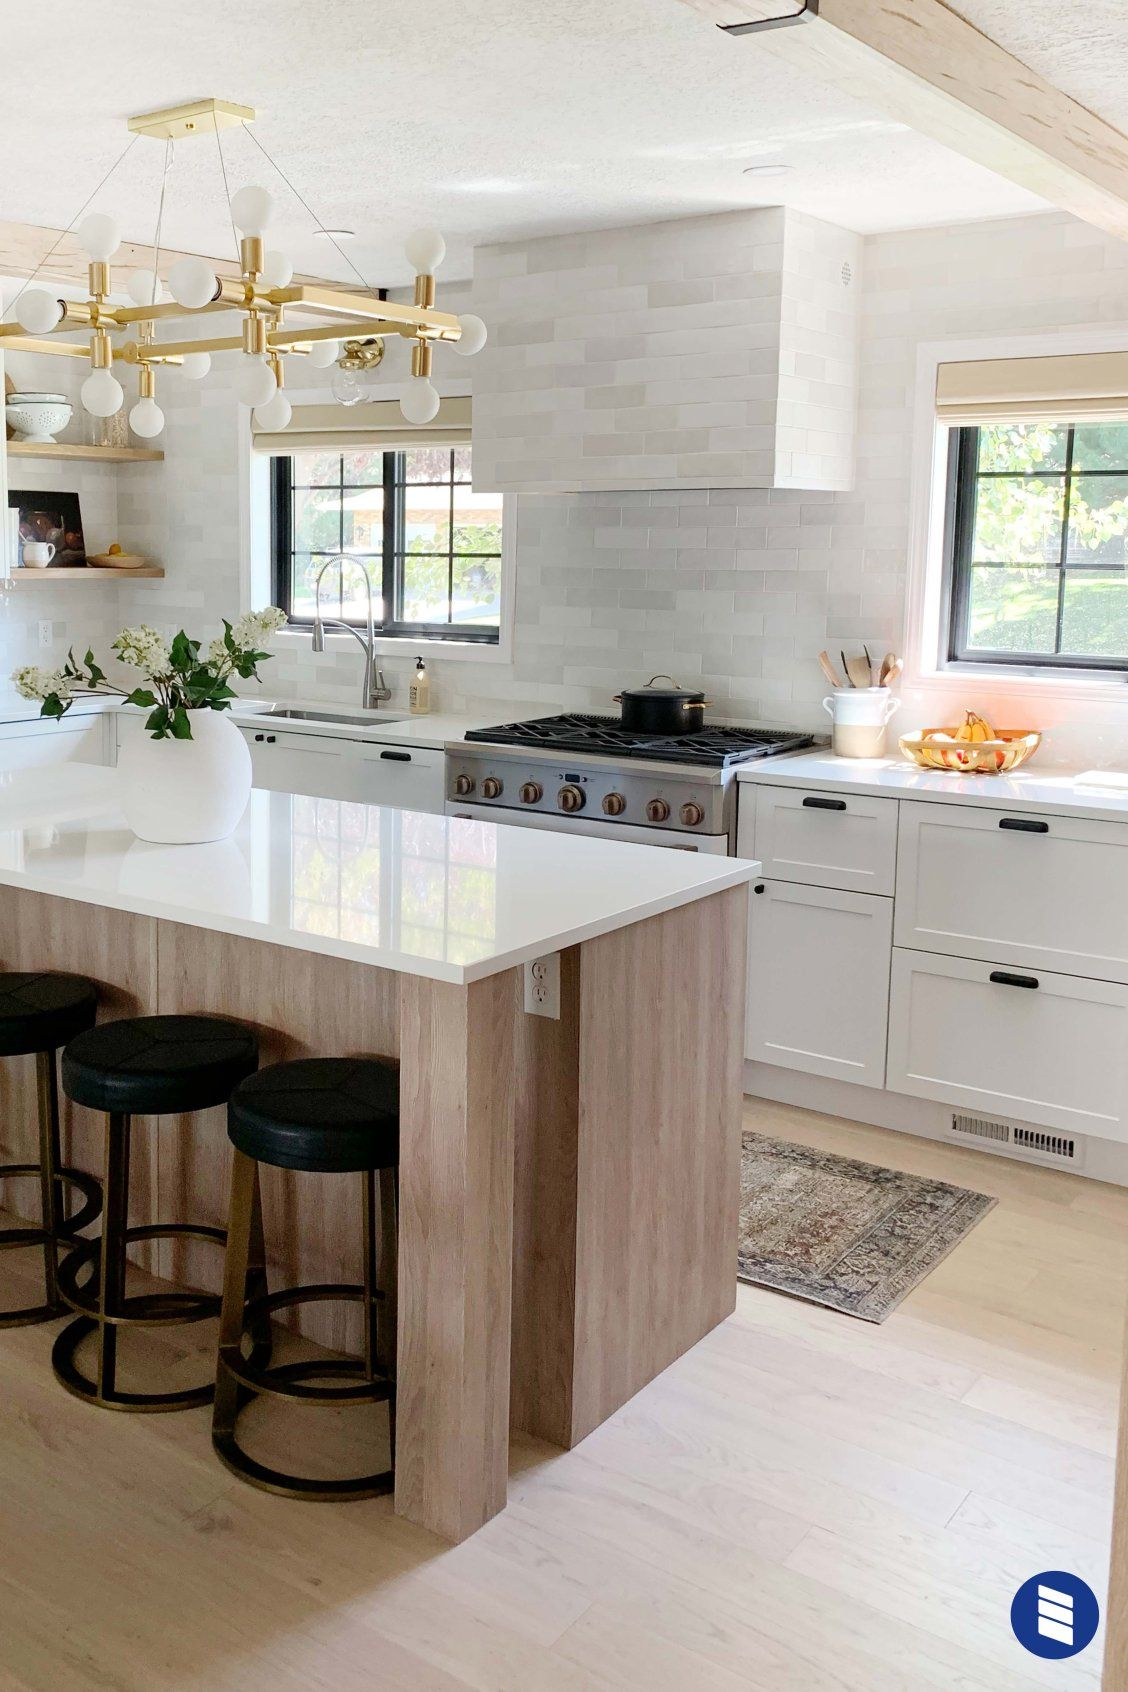 Chris Loves Julia S Kitchen Makeover Choosing Shades That Compliment Your View Instead Of Covering It Kitchen Decor Kitchen Makeover Kitchen Inspirations